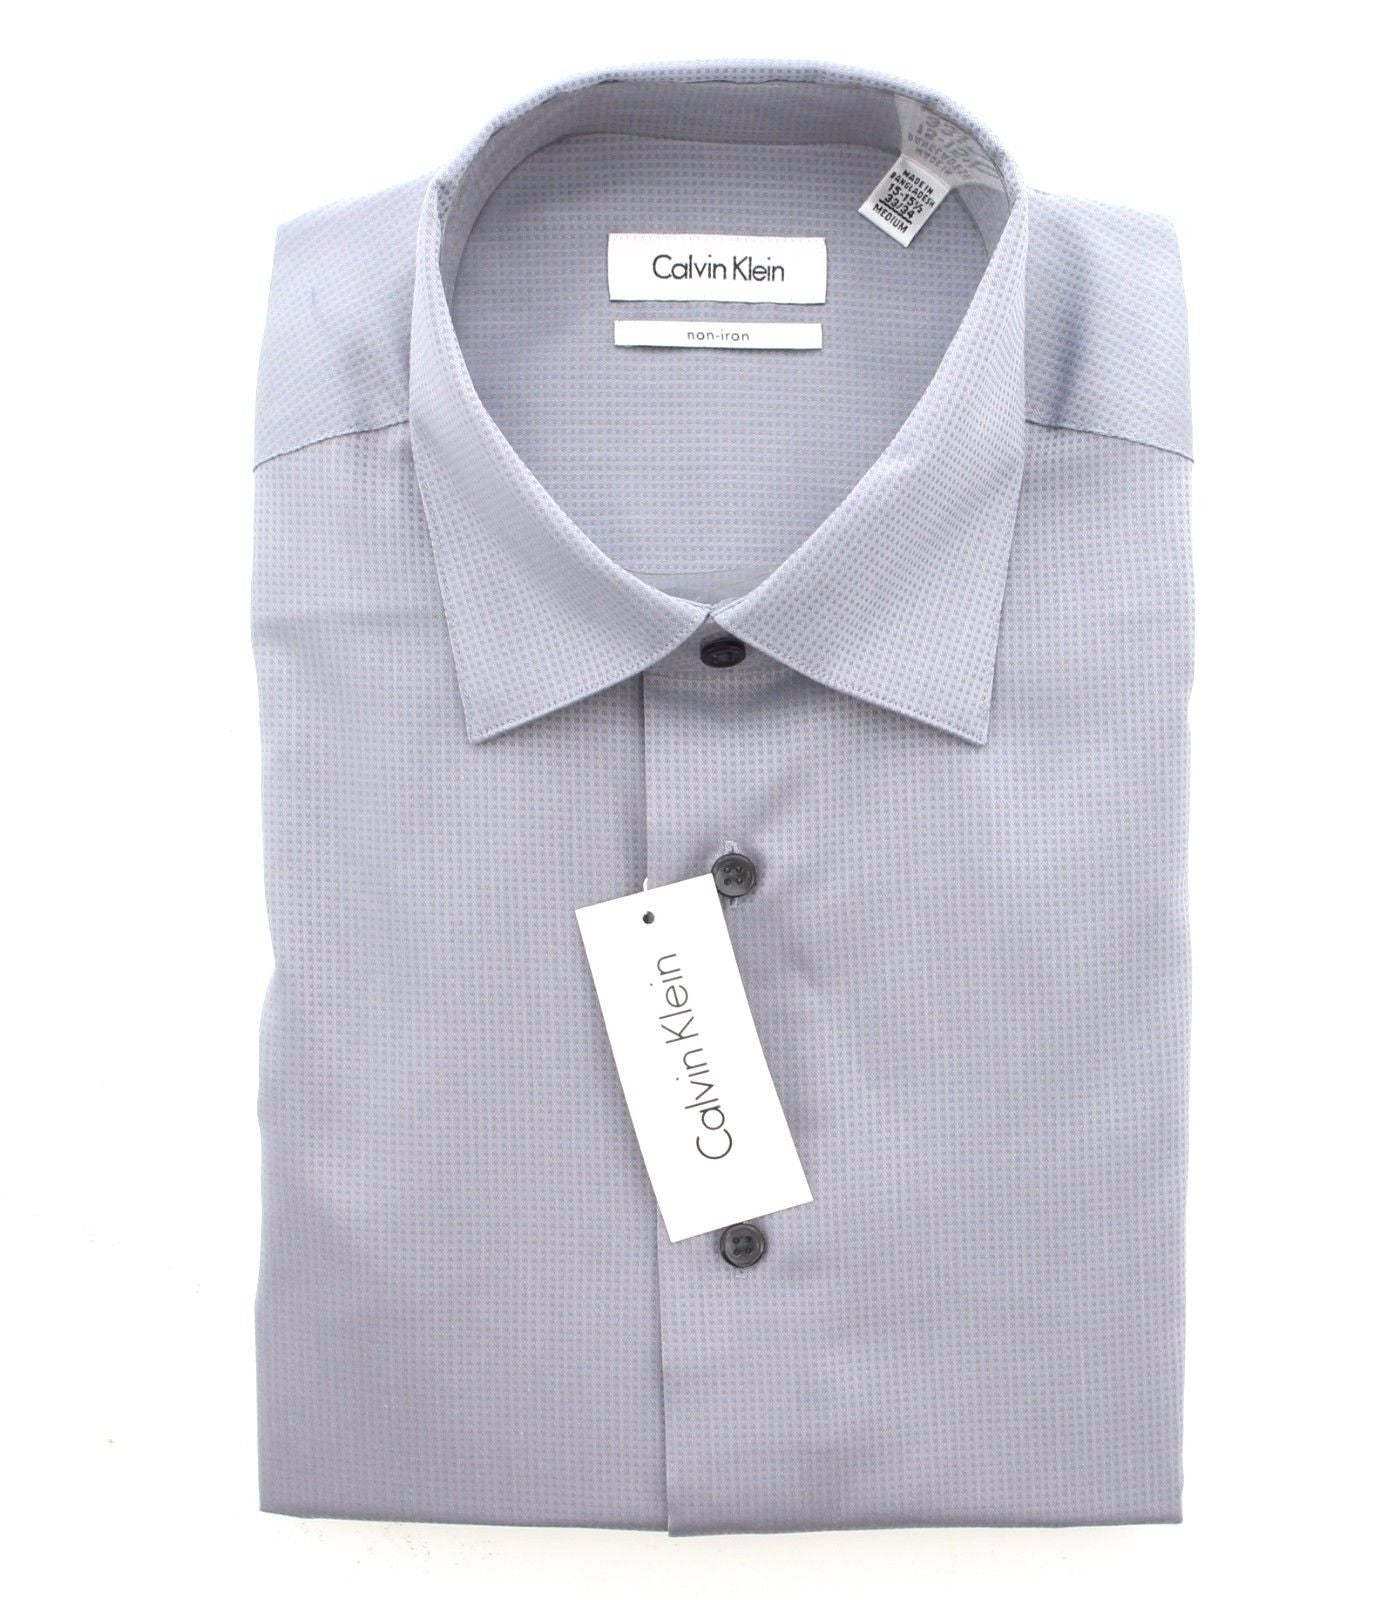 Calvin Klein CK Men's Non-Iron Dobby Long Sleeve Dress Shirt